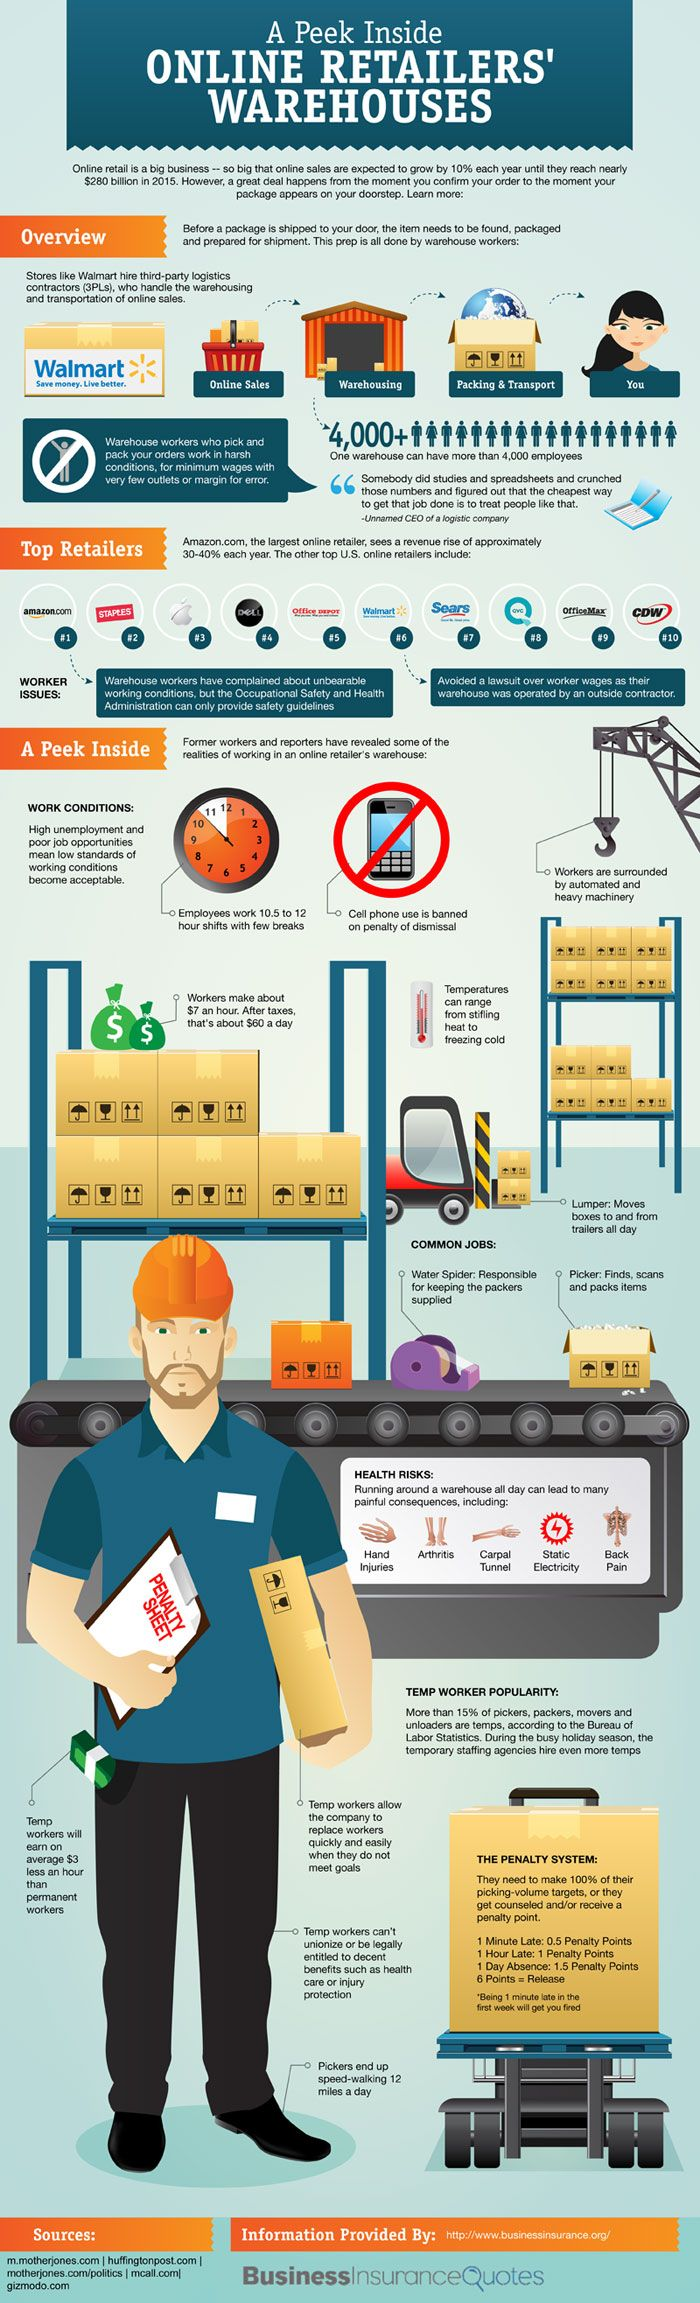 Useful for supply chain/logistics professionals: A Look Inside Online Retailers' Warehouses   Infographic #supplychain #logistics